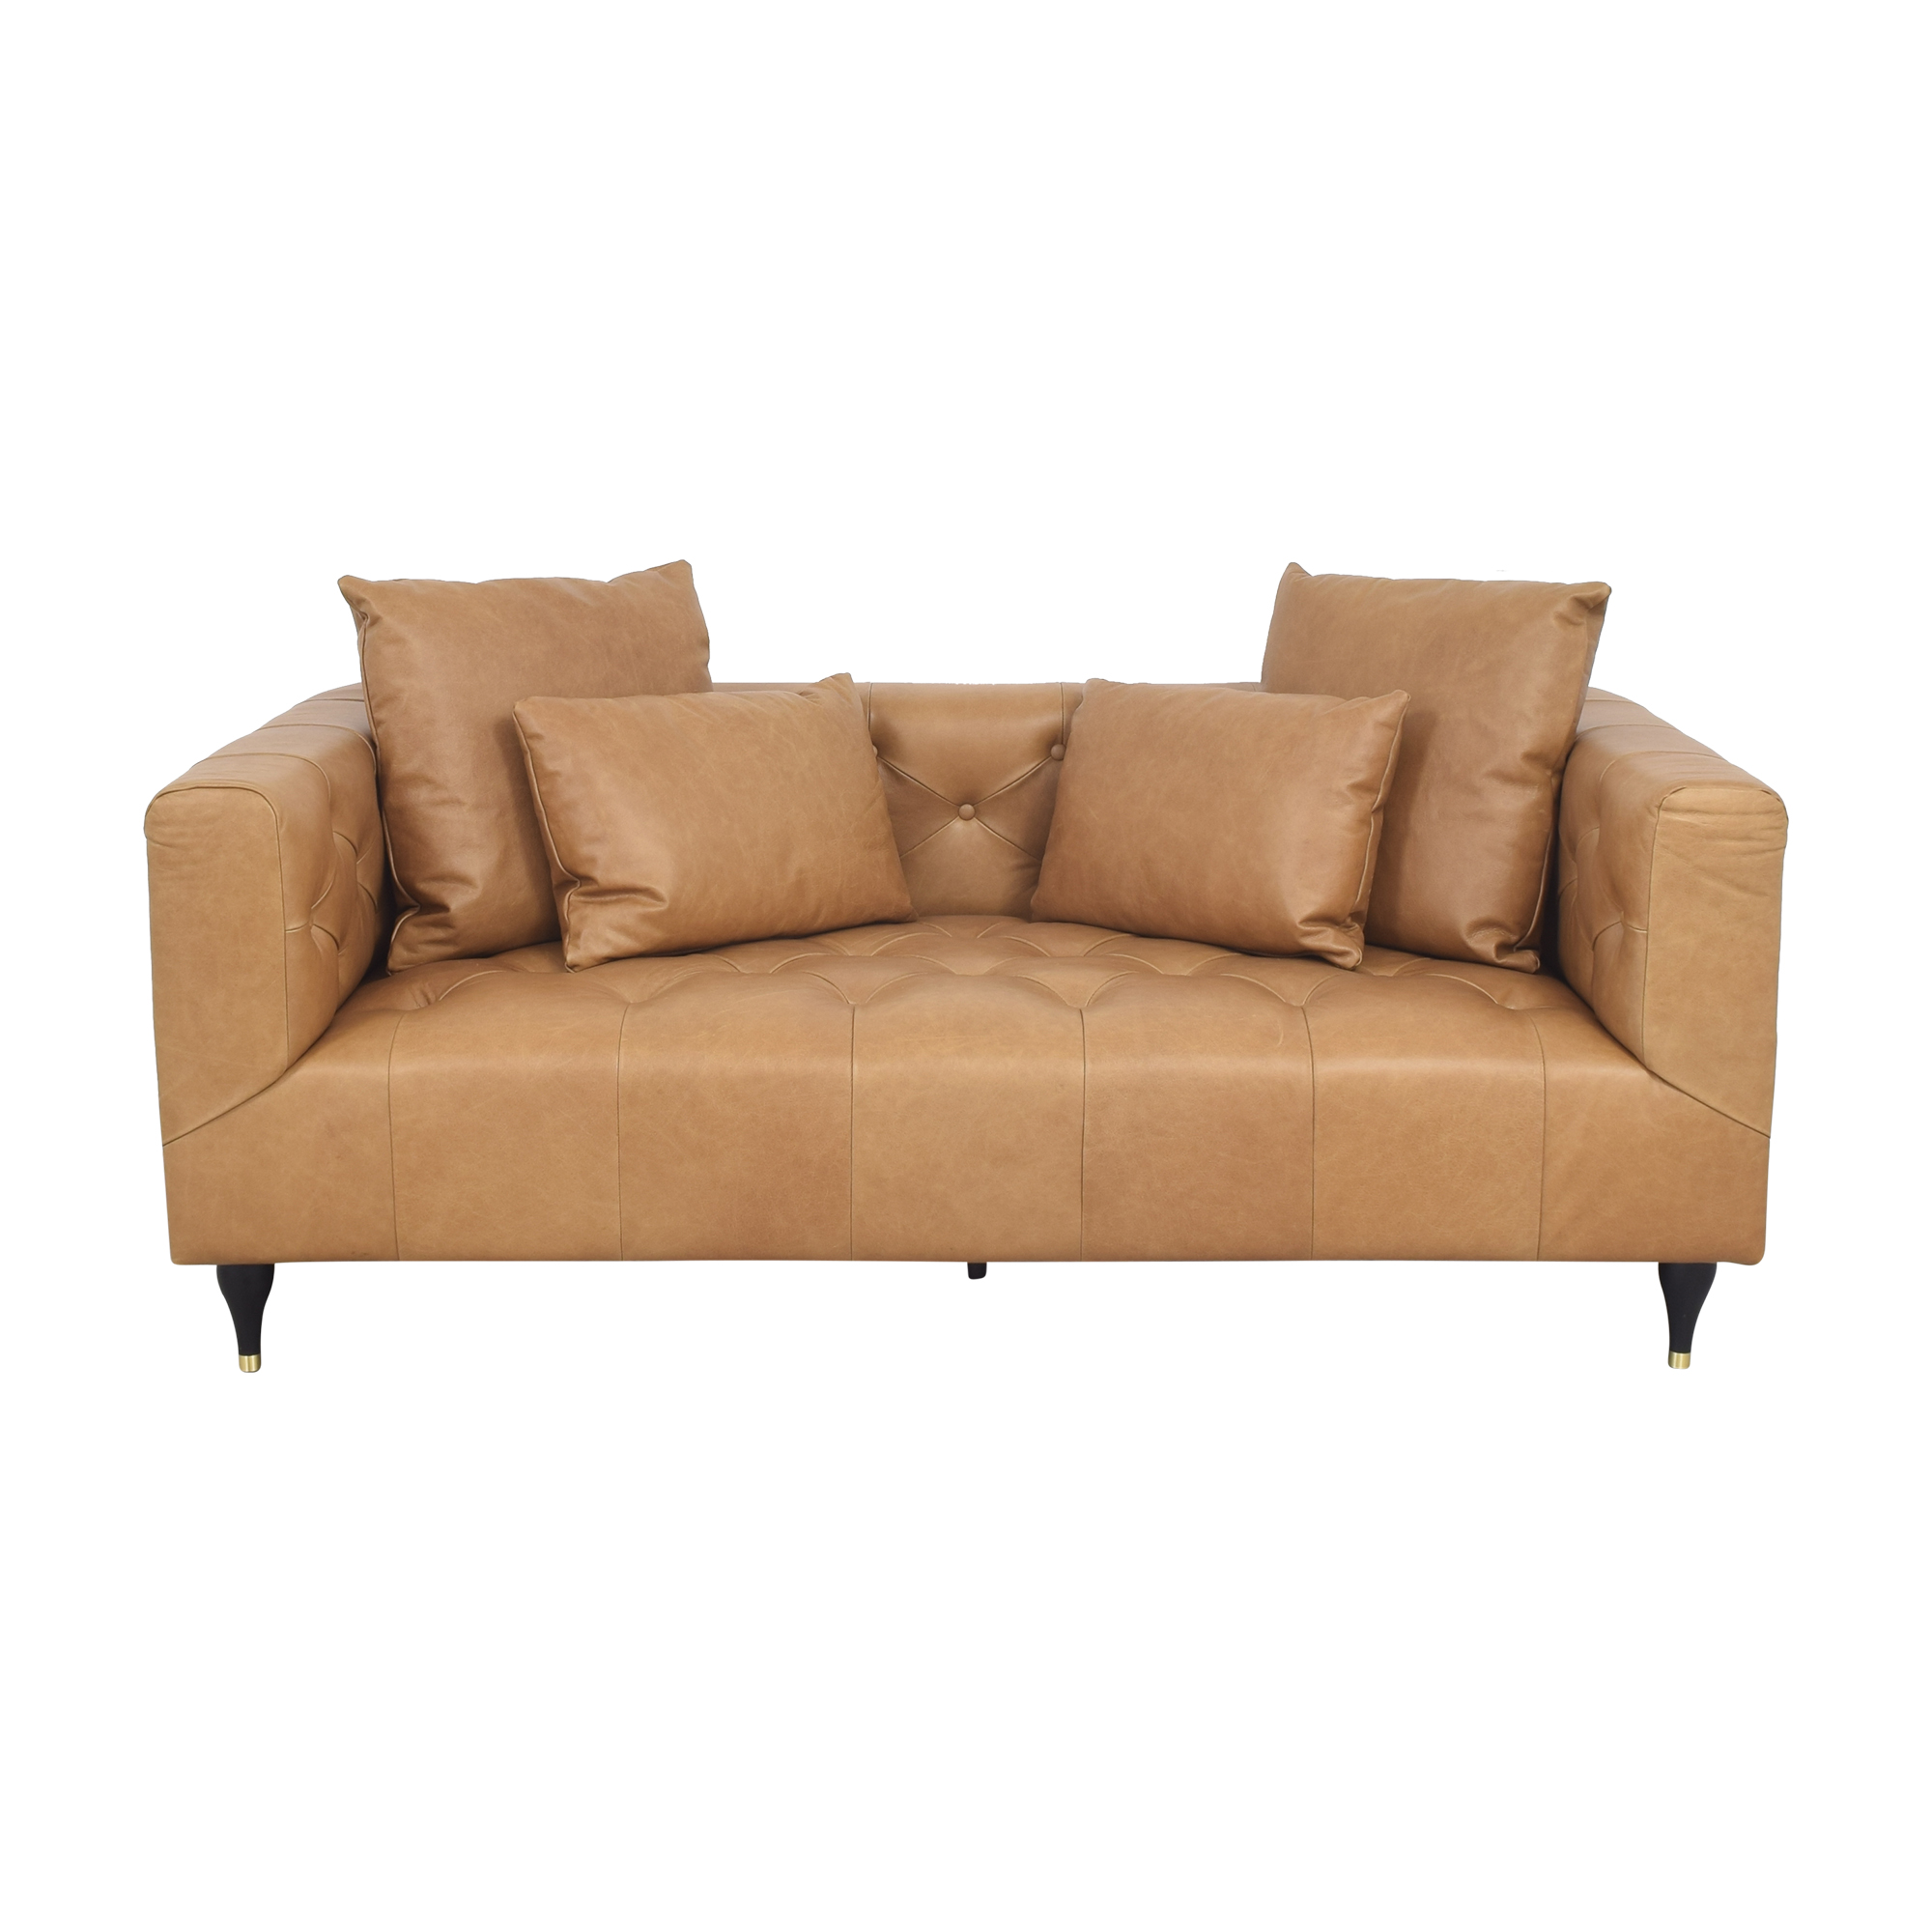 Interior Define Ms. Chesterfield Tufted Sofa sale